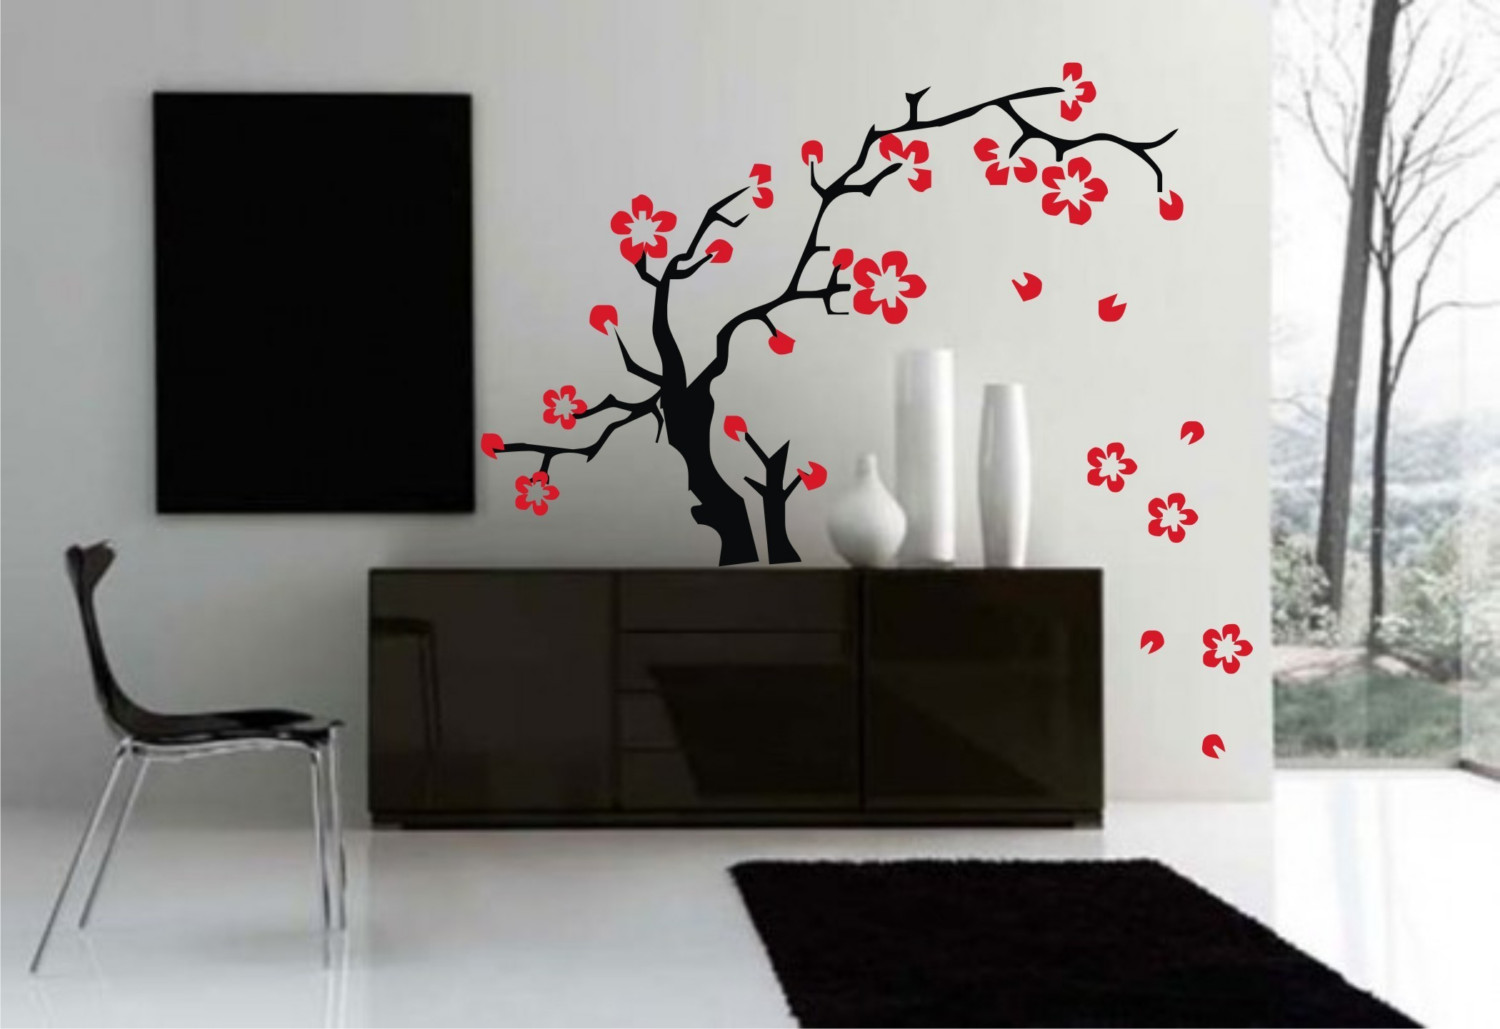 Japanese style decor apartments i like blog for Decor mural wall art